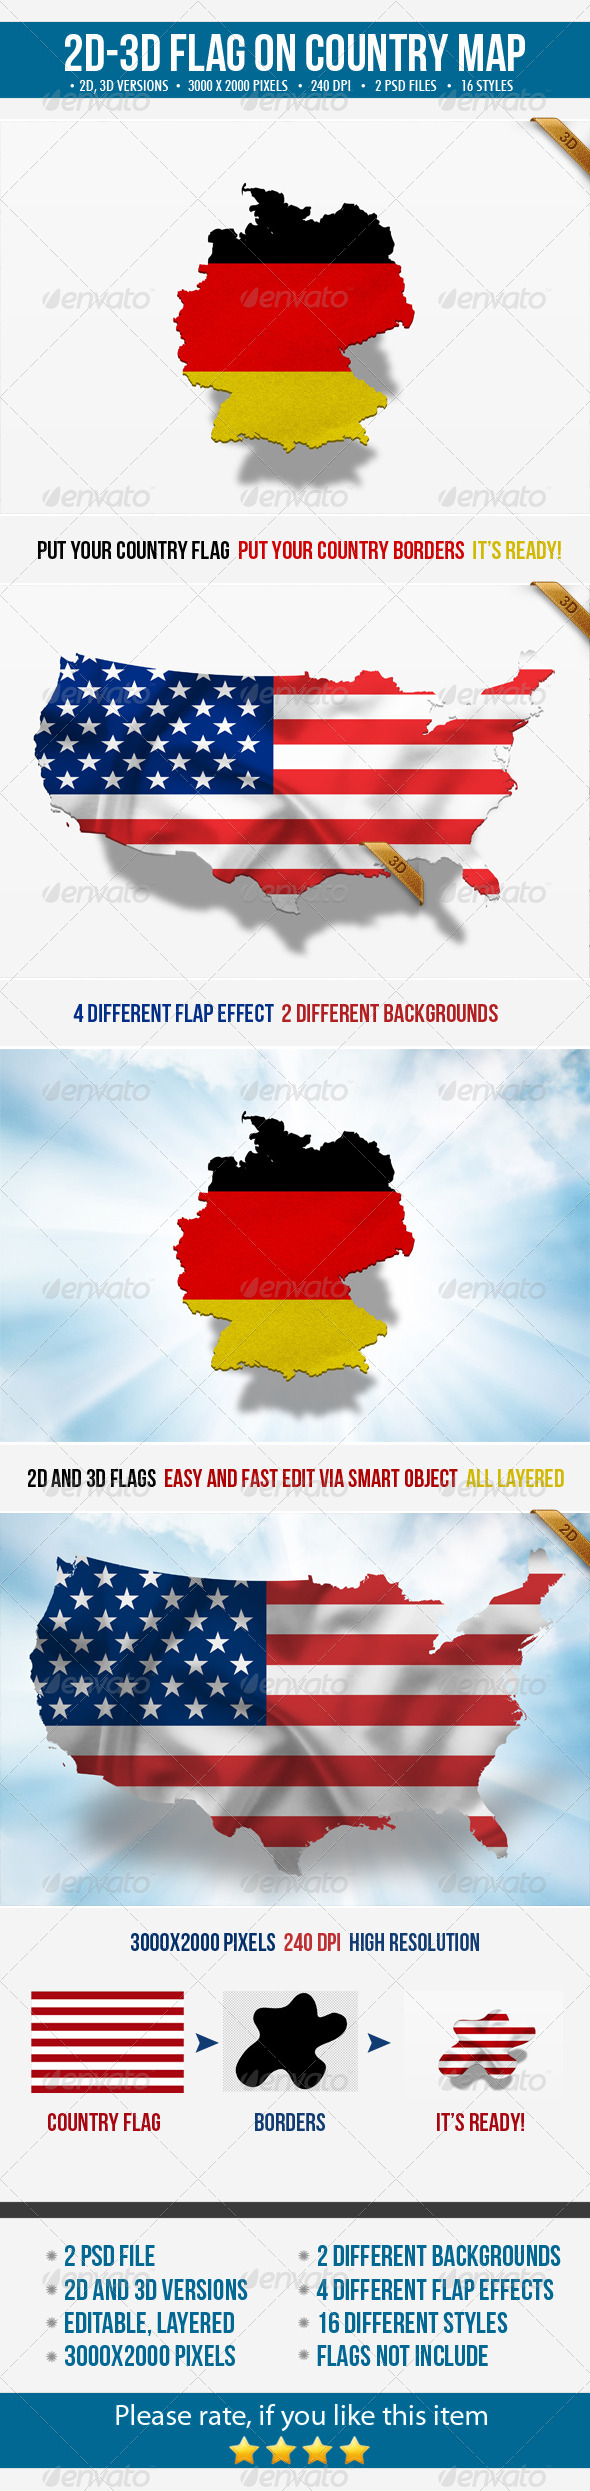 GraphicRiver 2D & 3D Flag on Country Map 5074909